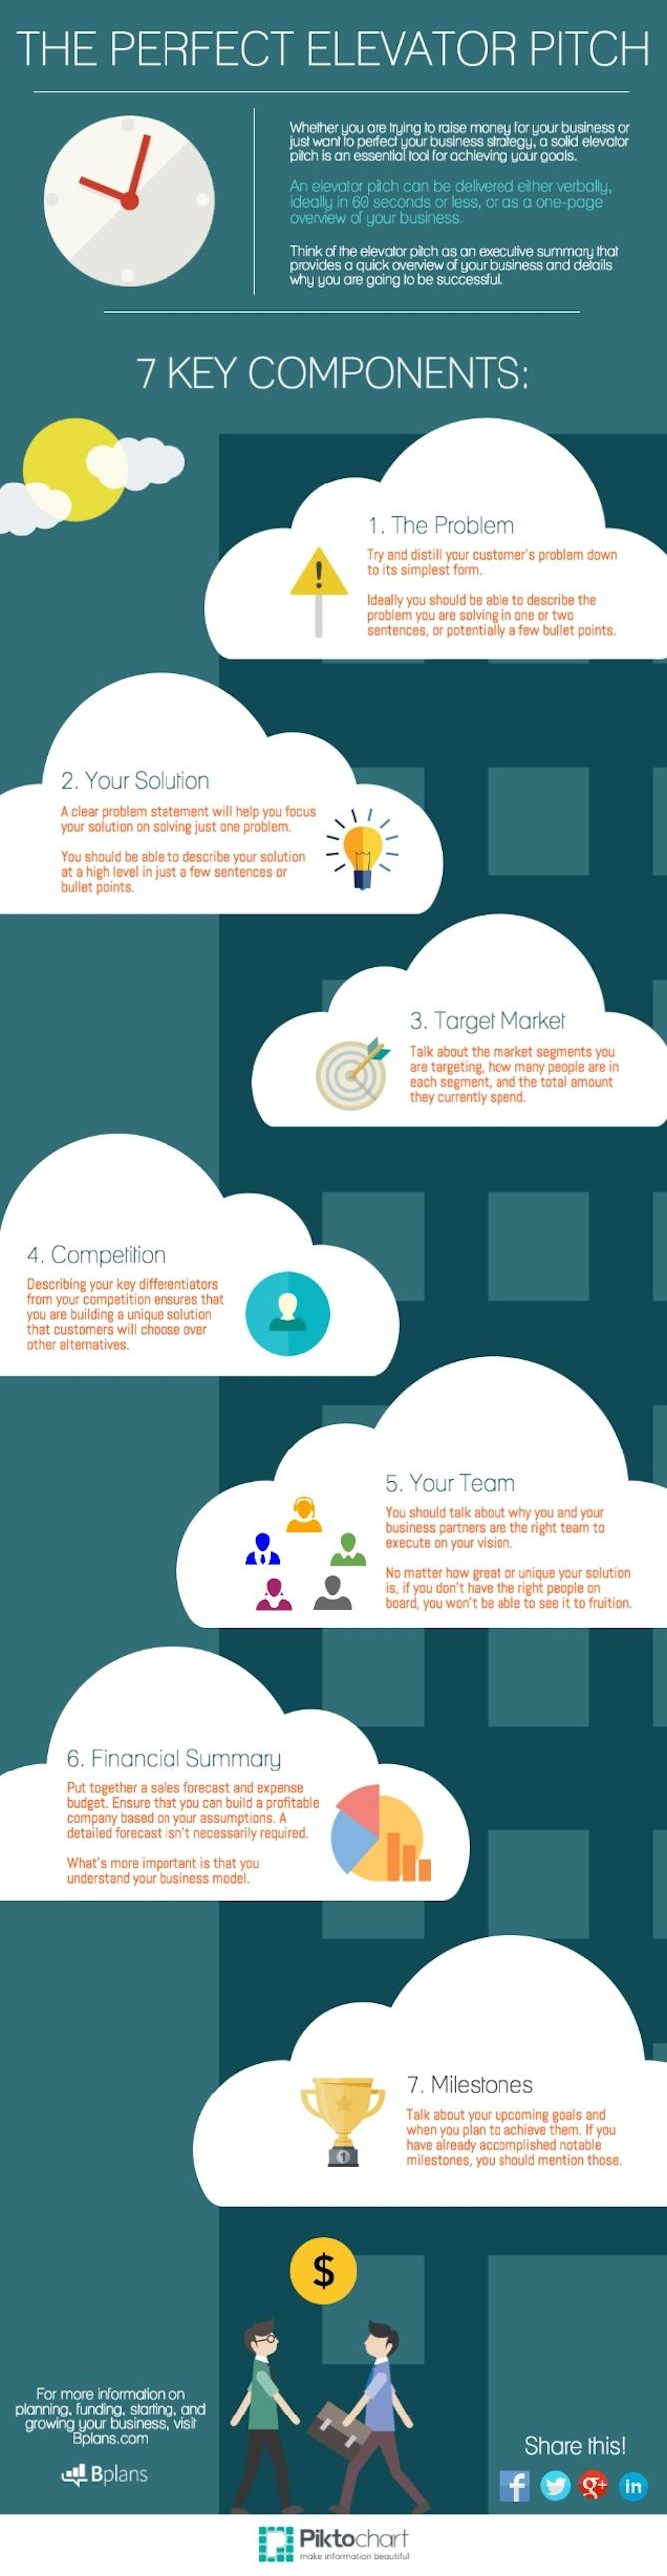 The 7 Components of a Perfect Elevator Pitch [Infographic], via @HubSpot